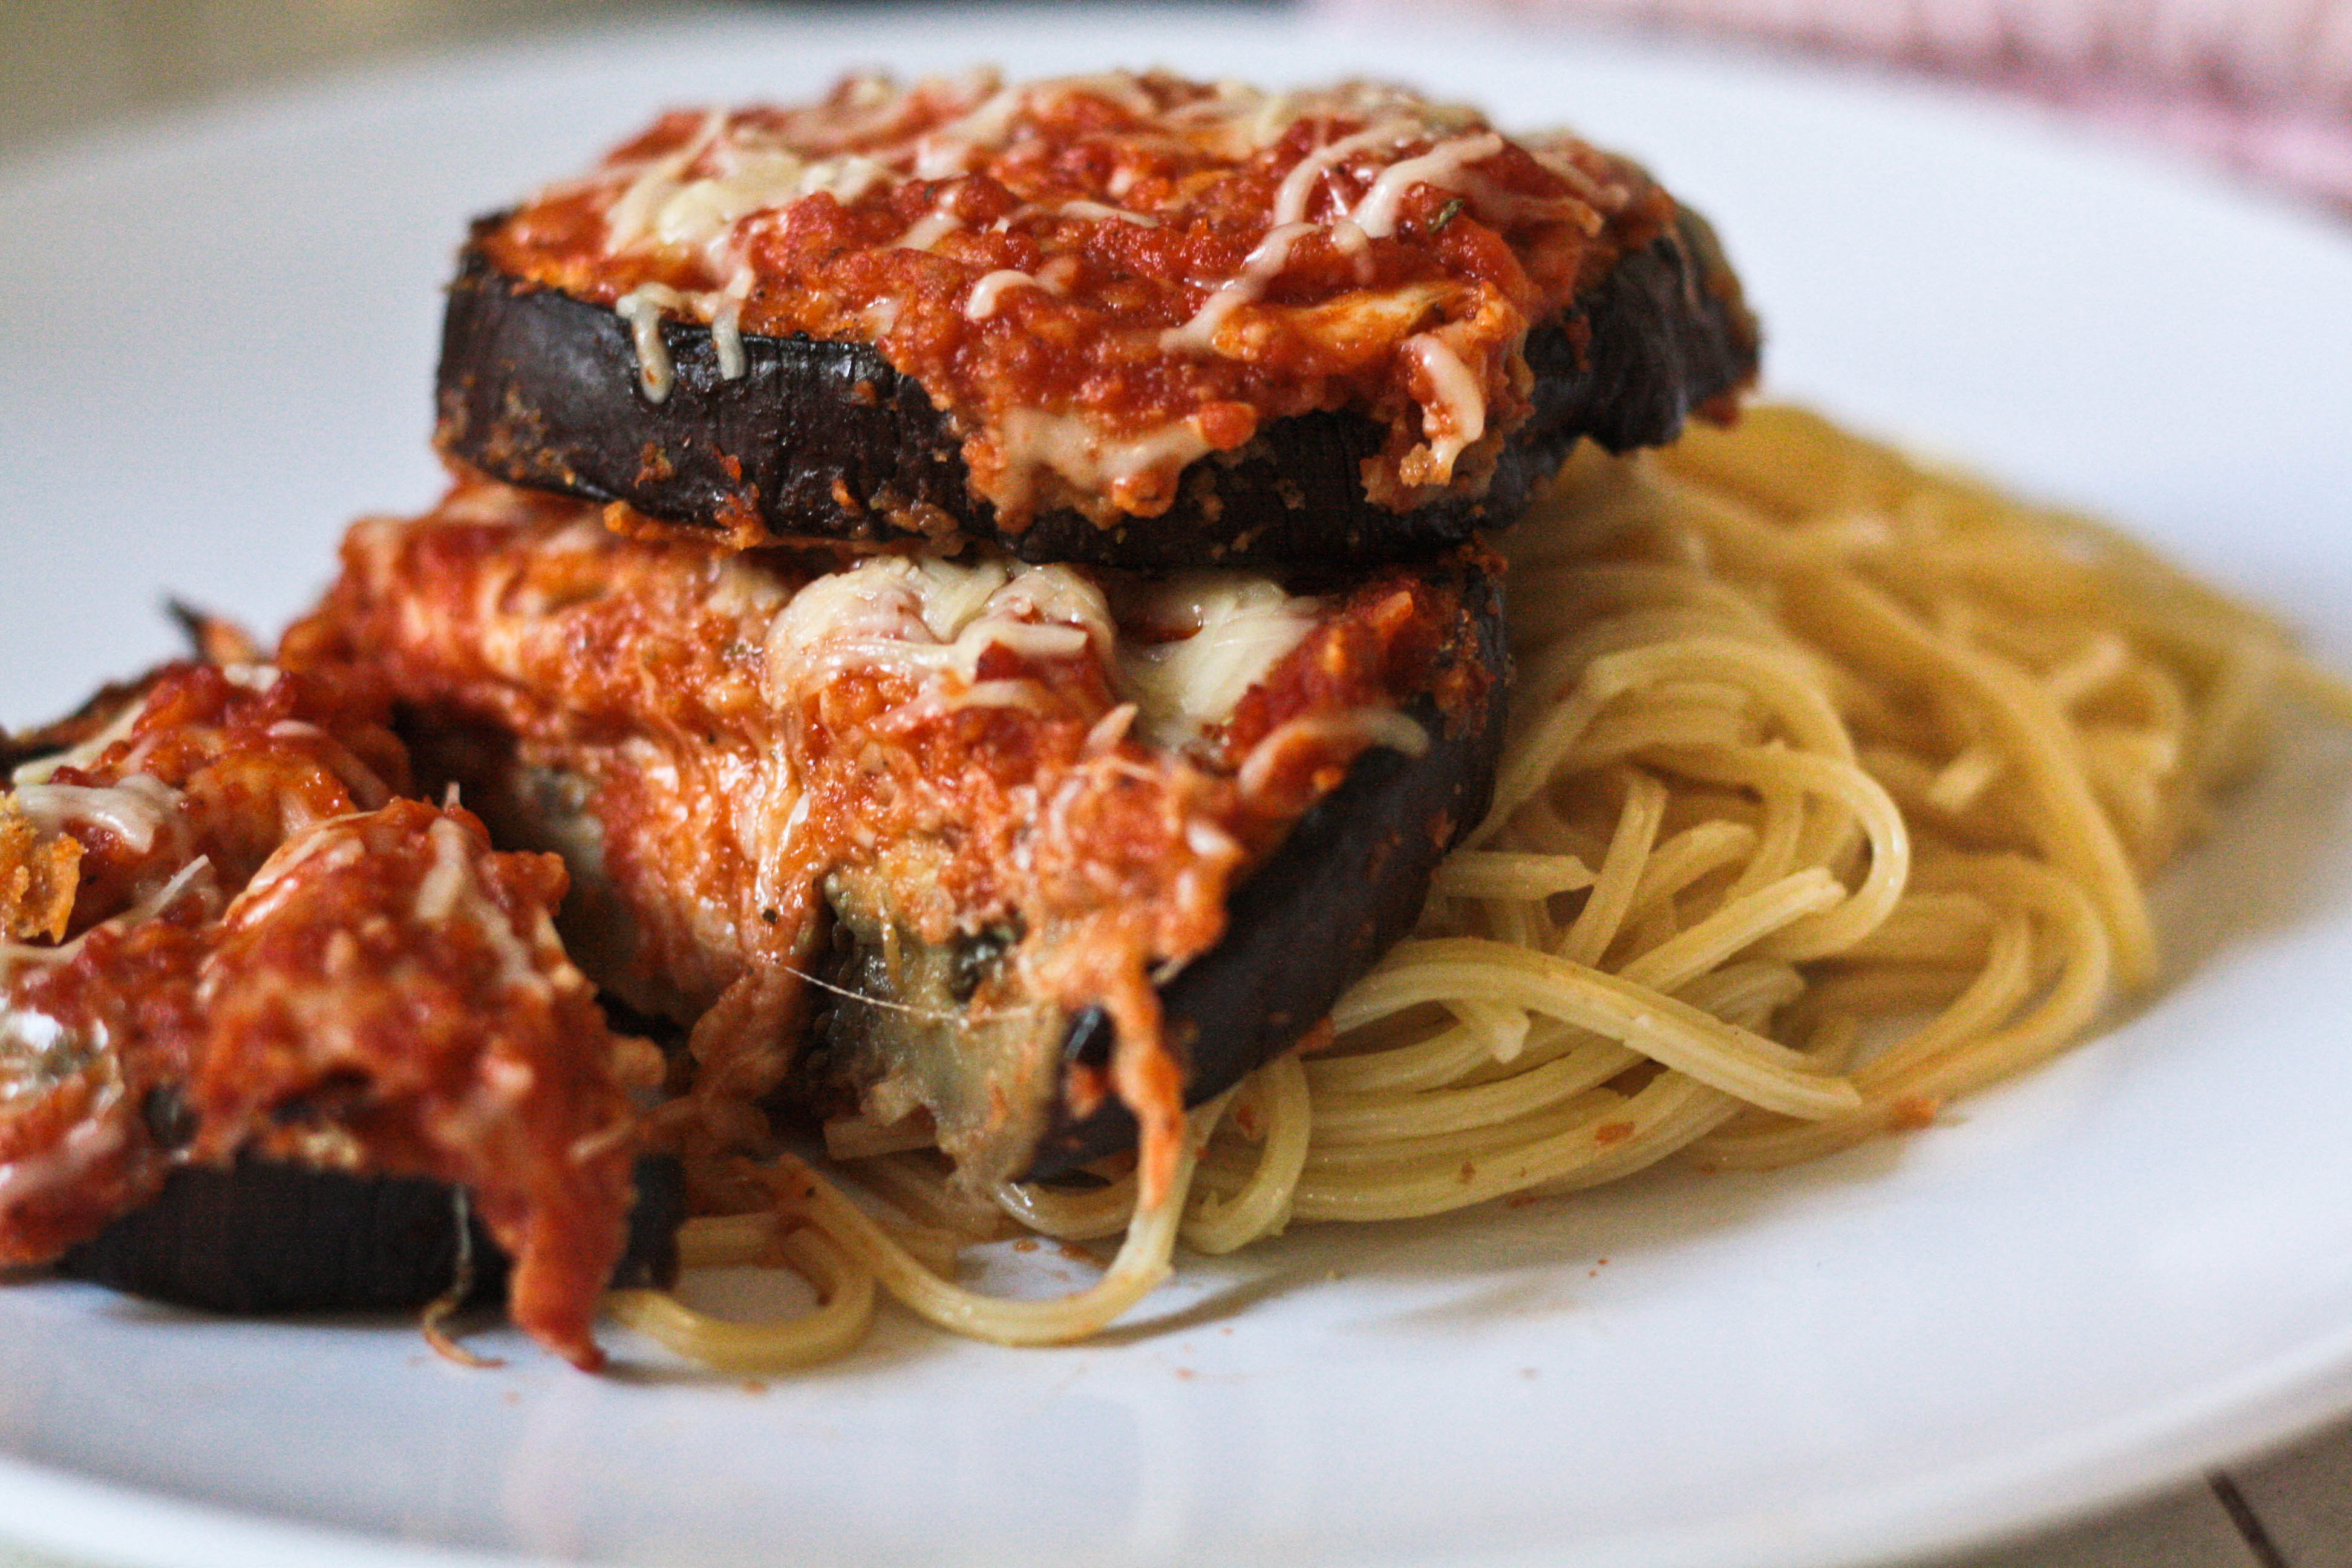 ... eggplant parmesan recipe as i also love eggplant low carb eggplant